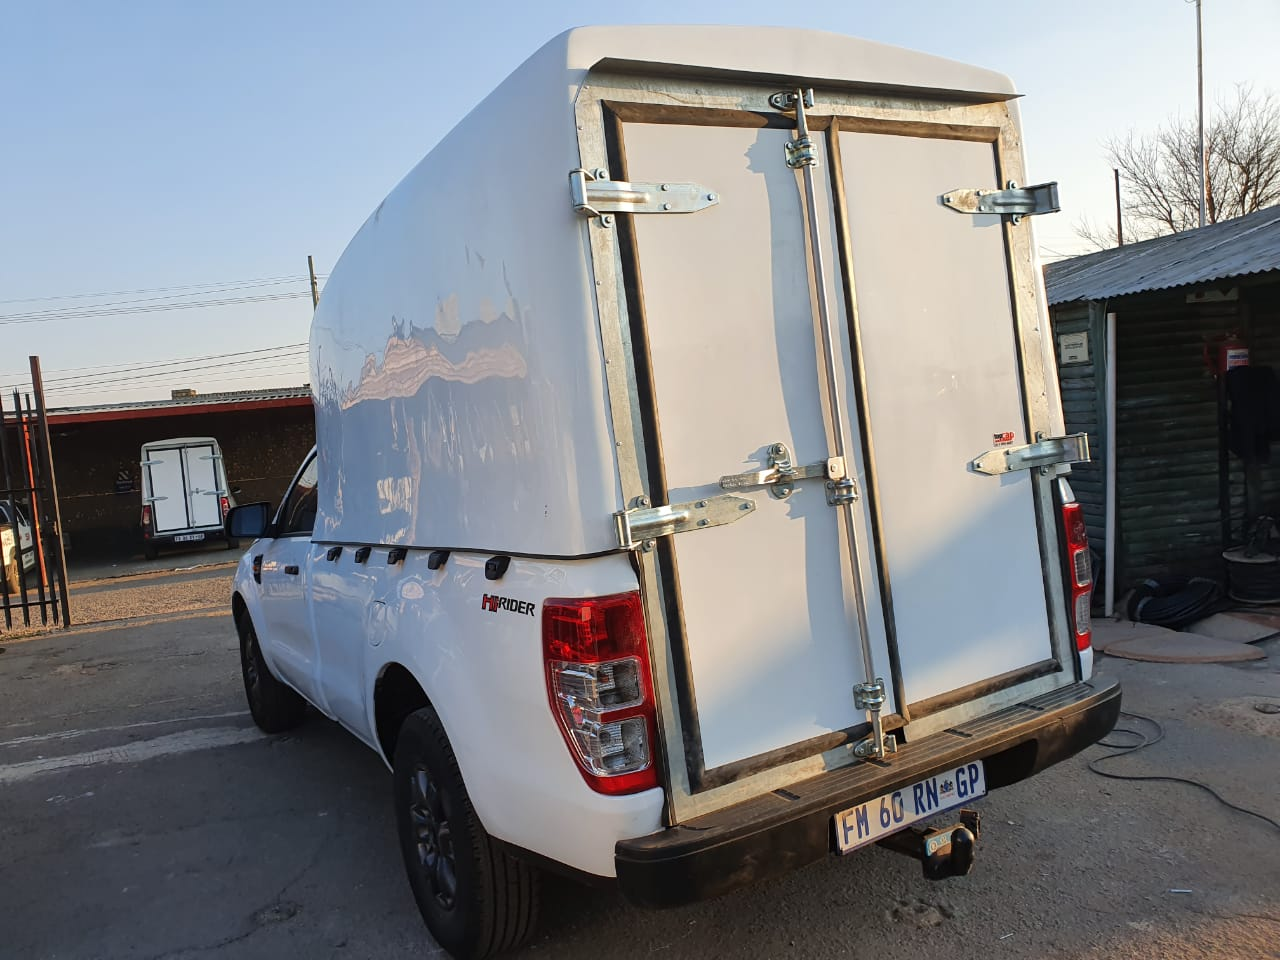 GC NEW FORD RANGER T6 SPACE SAVER CANOPY FOR SALE